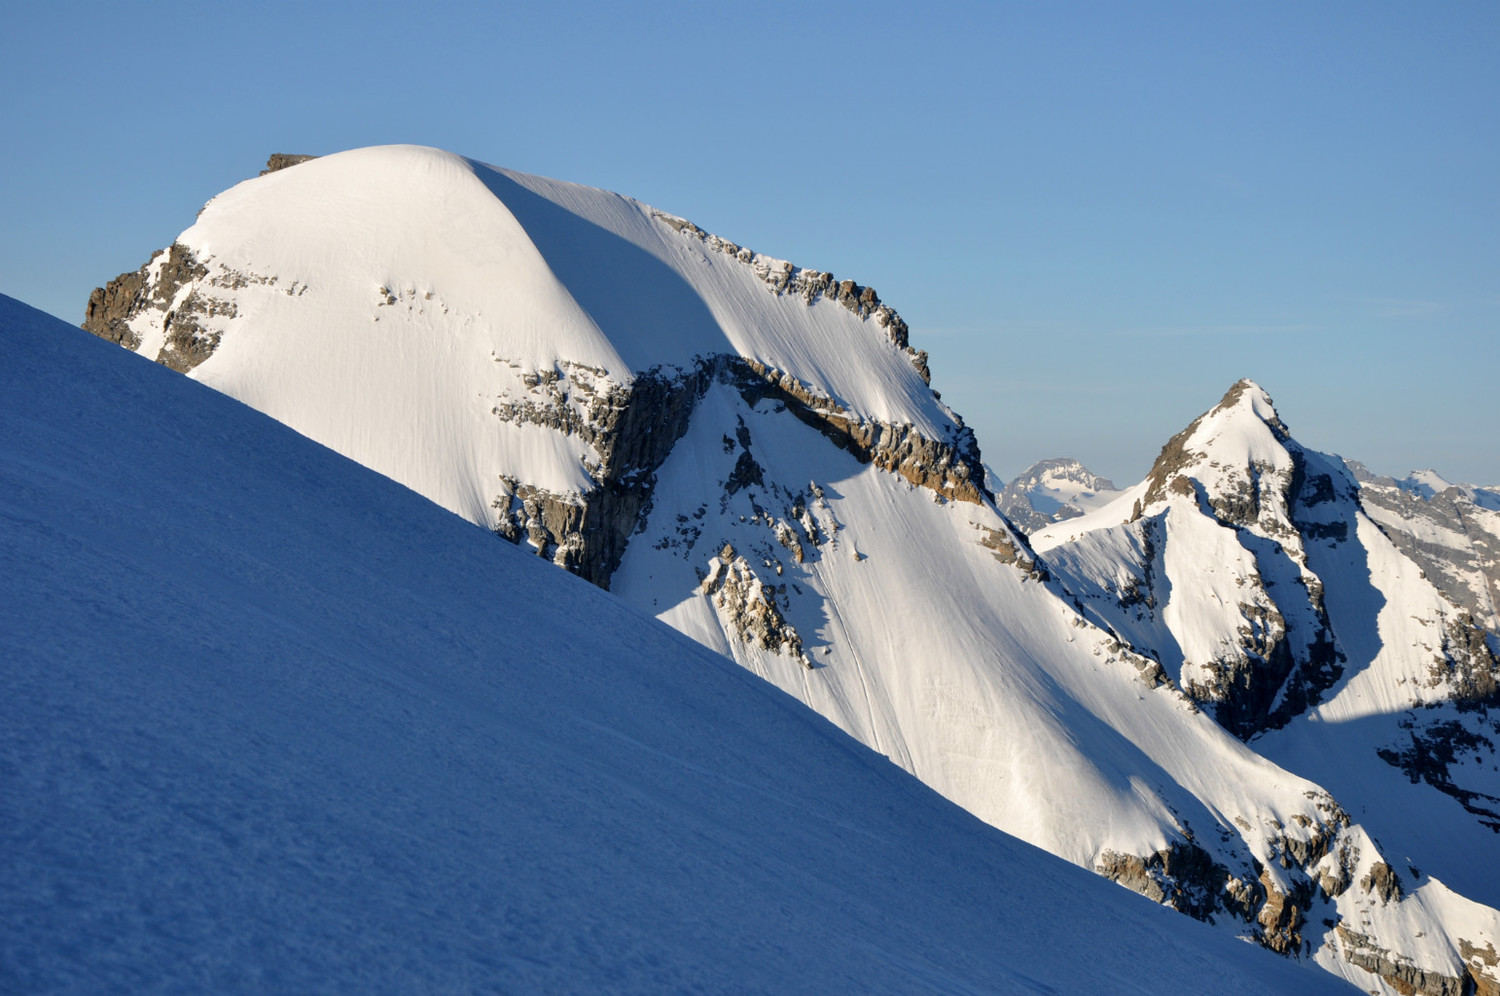 Ciarforon (3641m) and Becca de Monciar (3545m) : north faces. Climbers can be seen on both faces